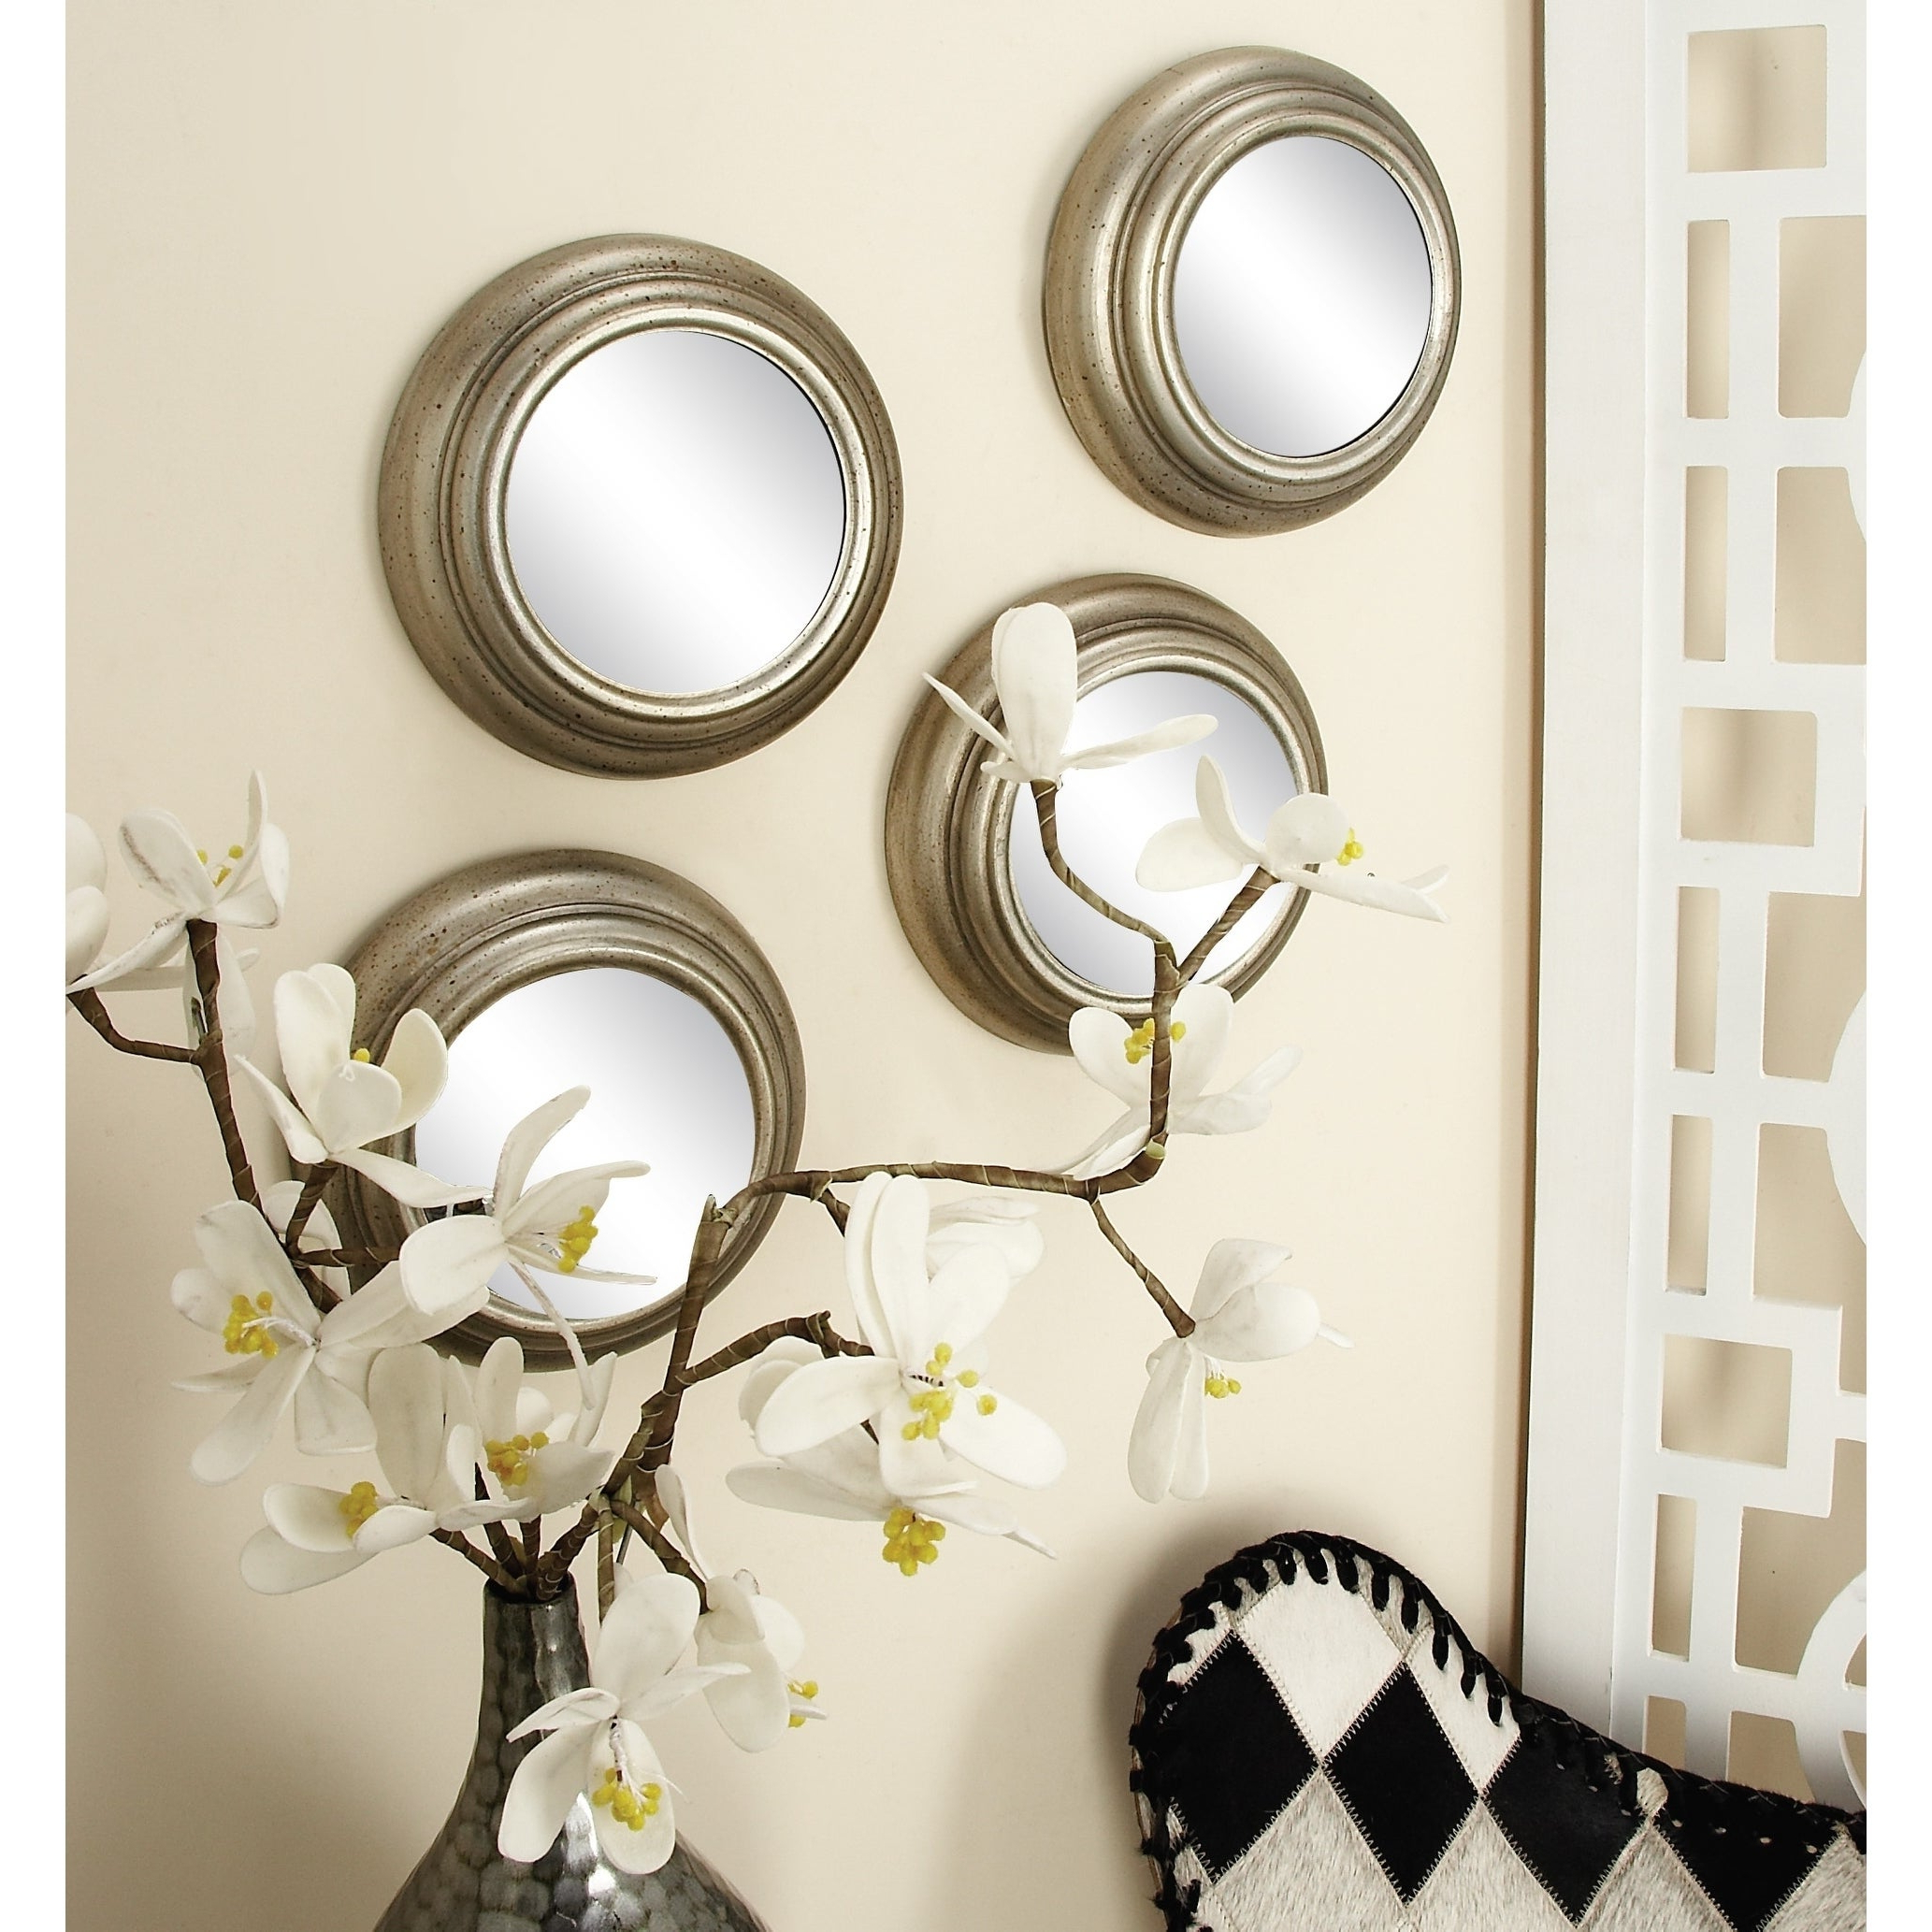 Set Of 12 Contemporary Round Decorative Wall Mirrorsstudio 350 – Silver Inside Recent Cheap Decorative Wall Mirrors (View 4 of 20)